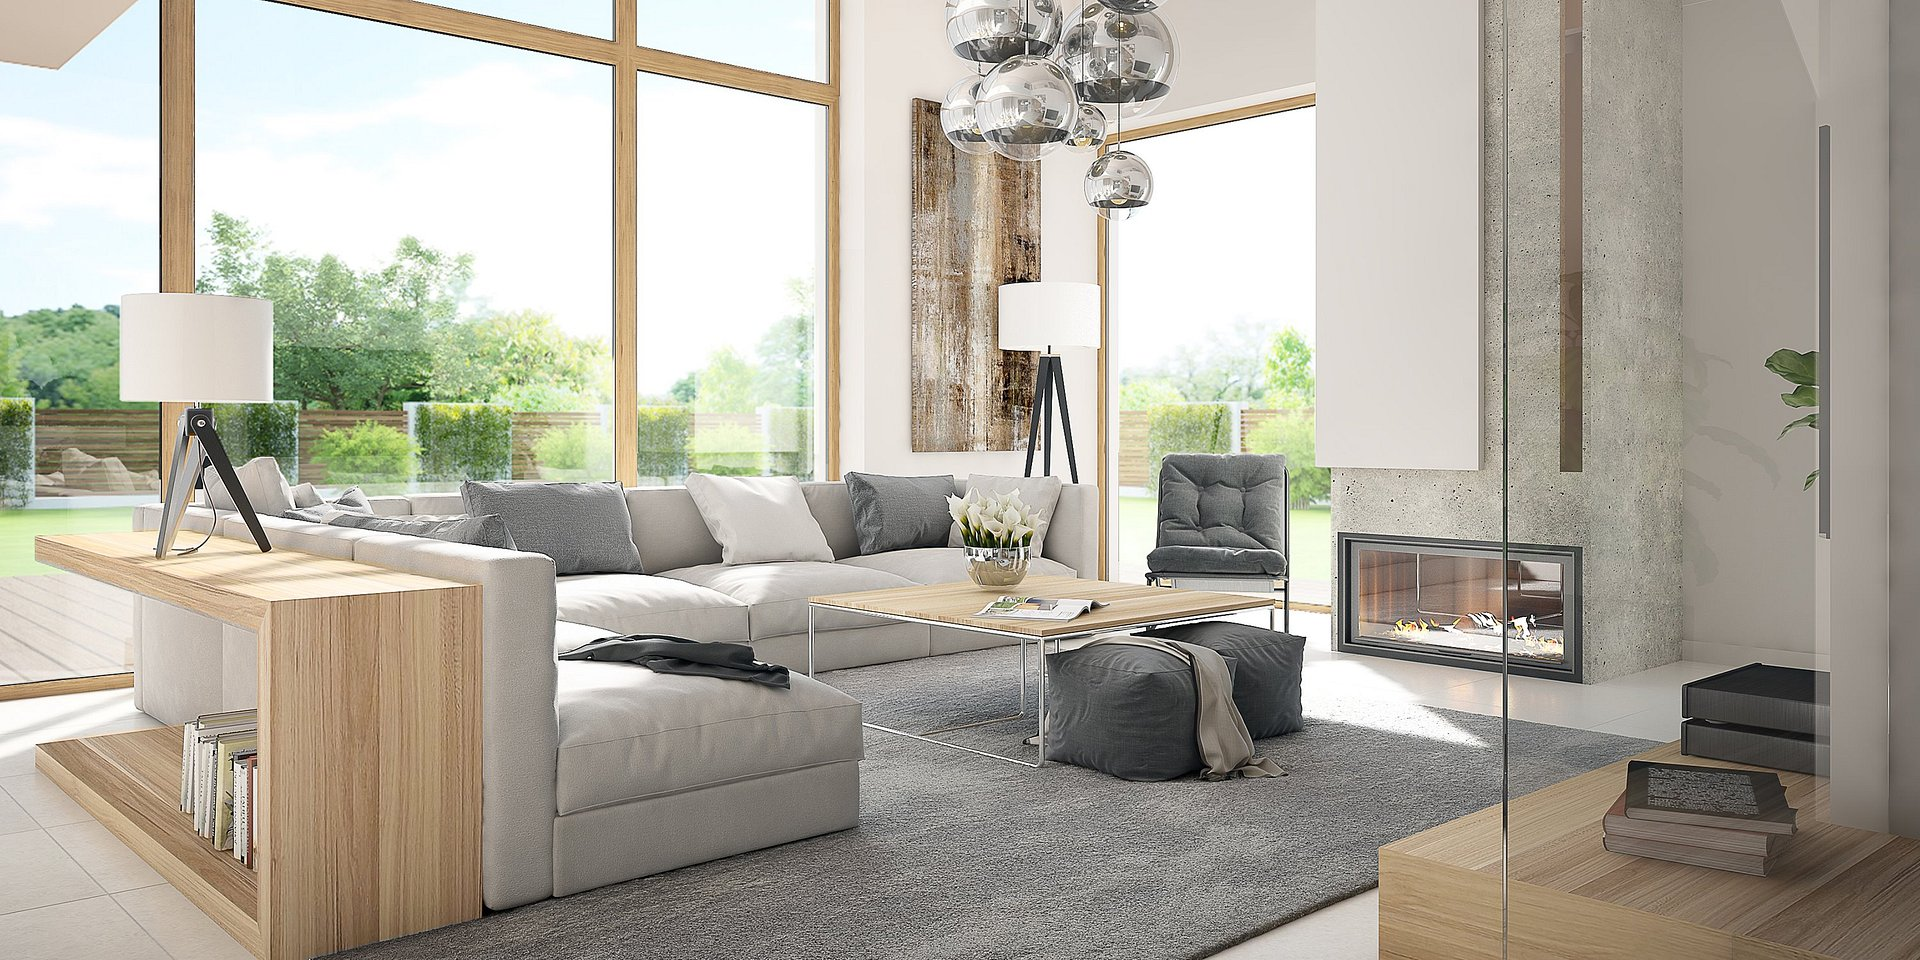 Windows as an interior design element – trends for 2021